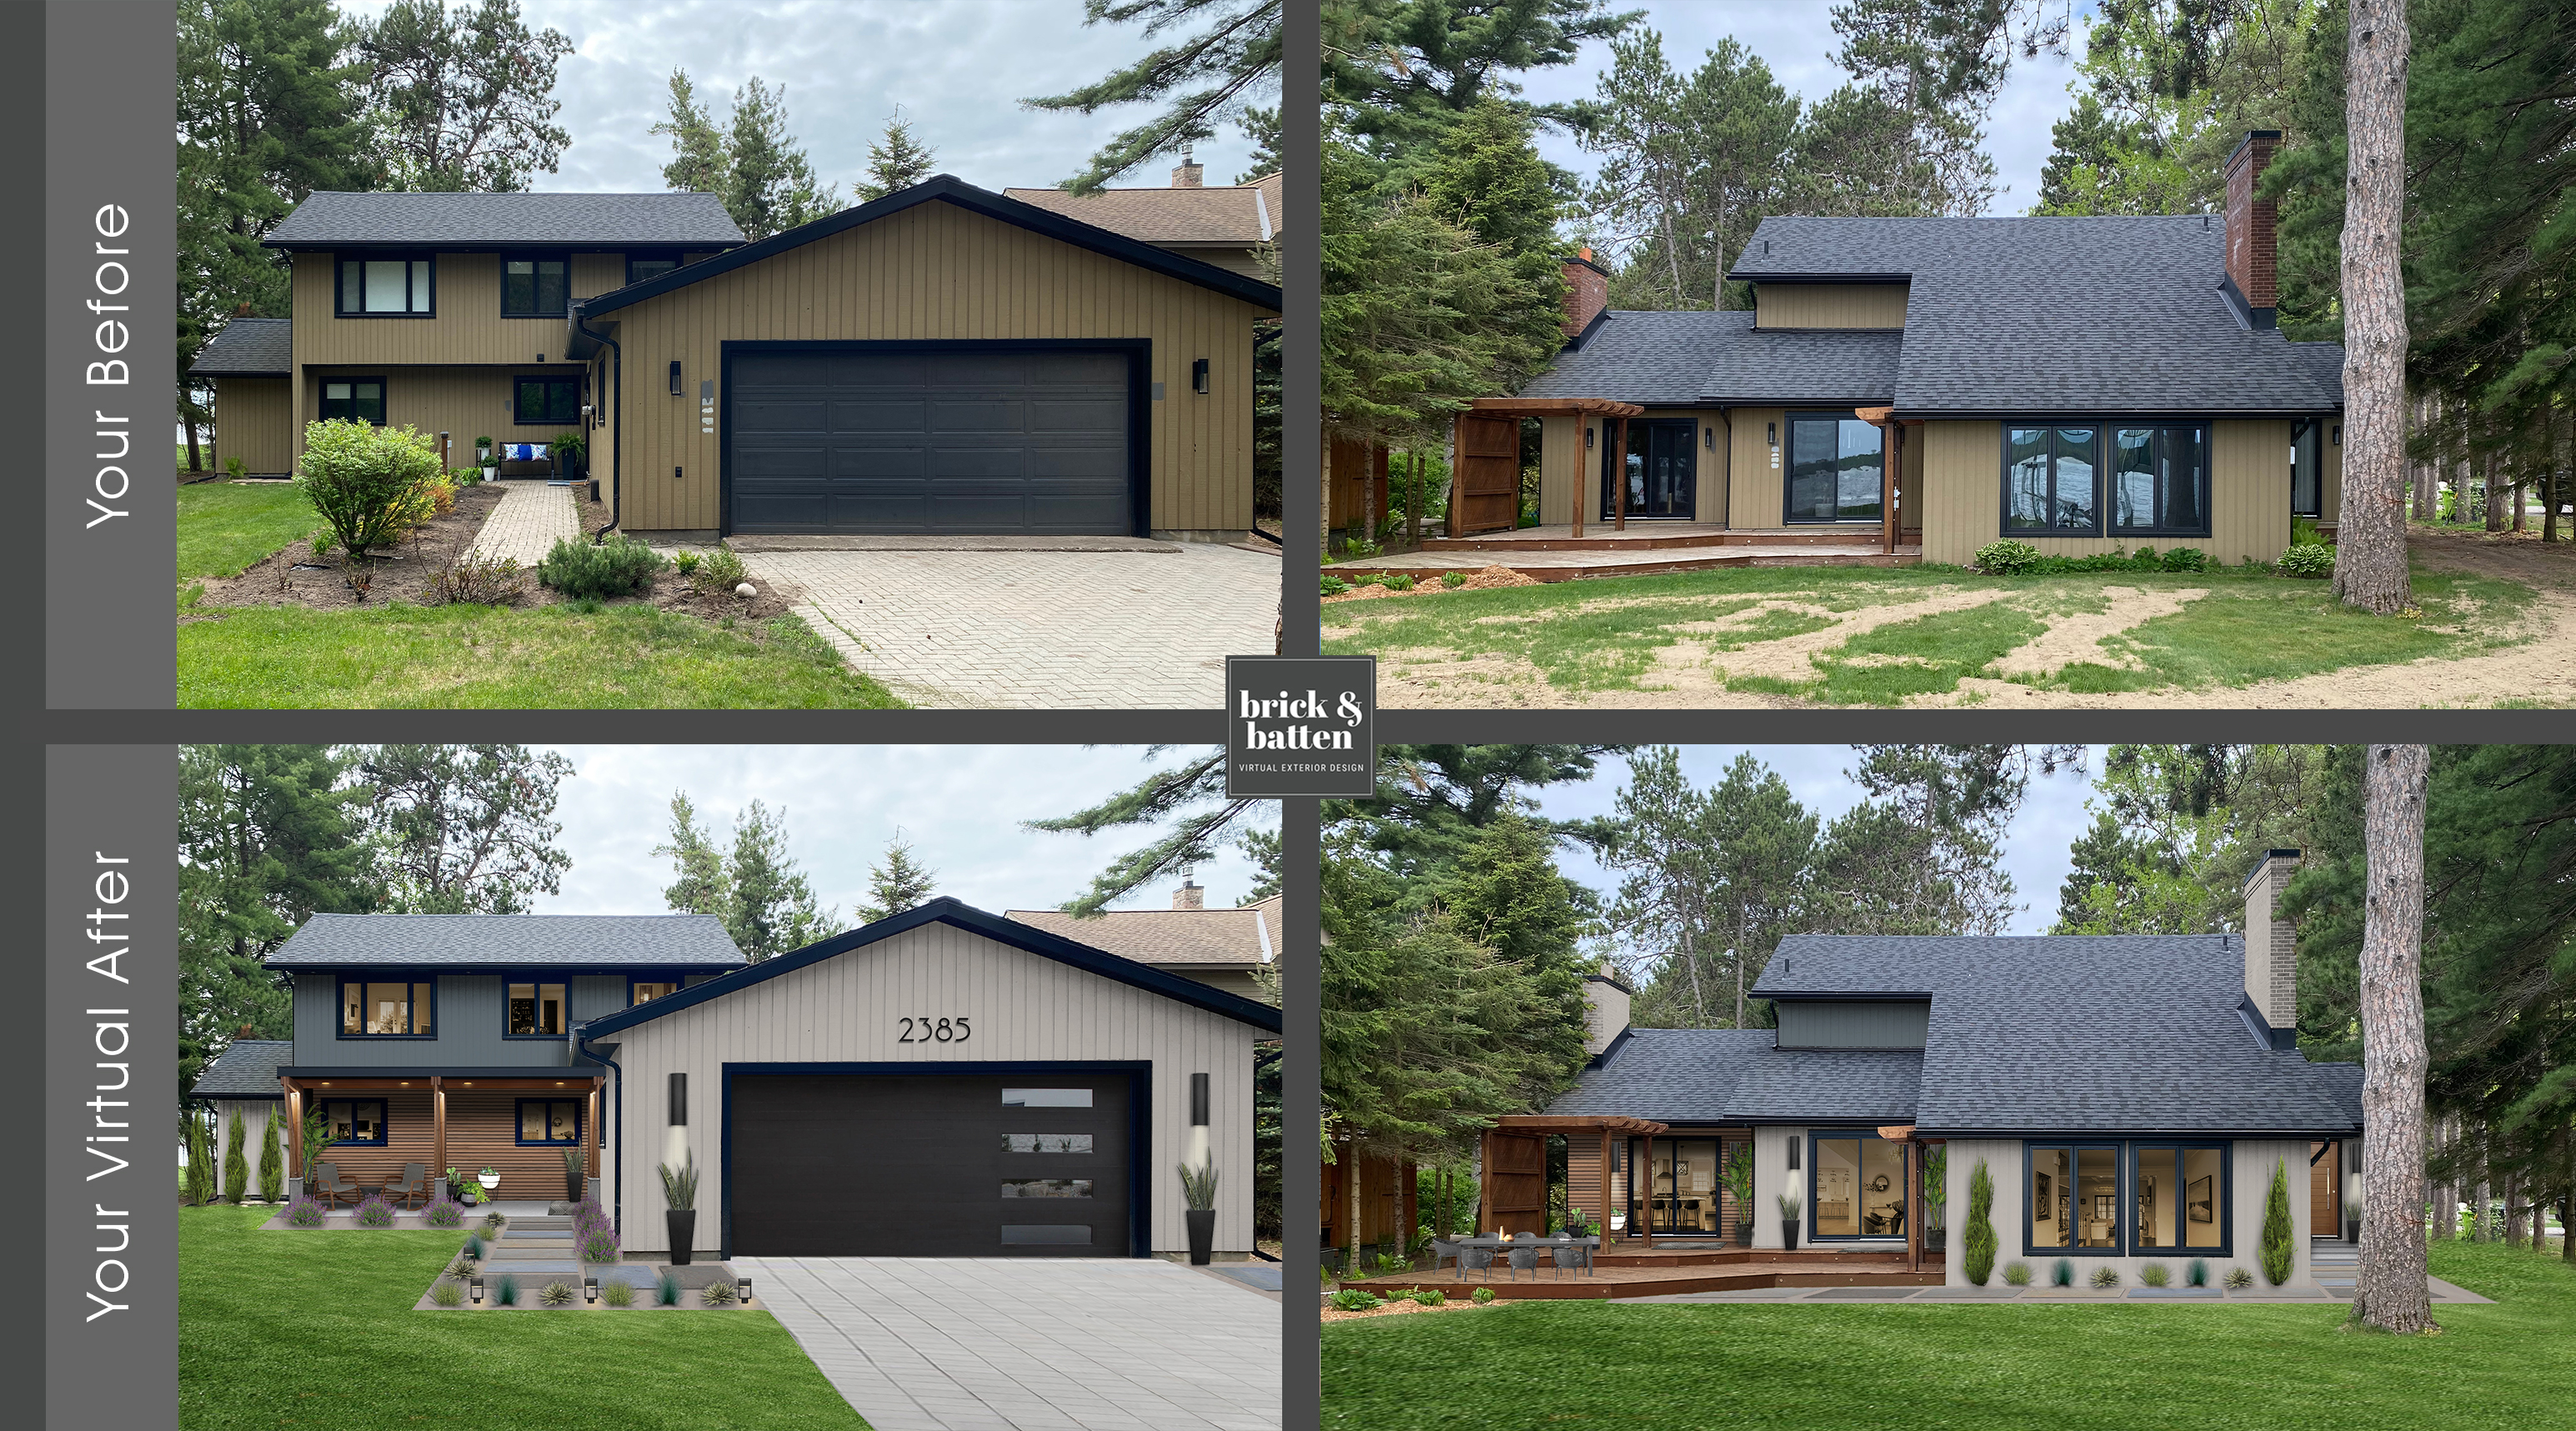 traditional modern home with charcoal, light gray, and wood siding